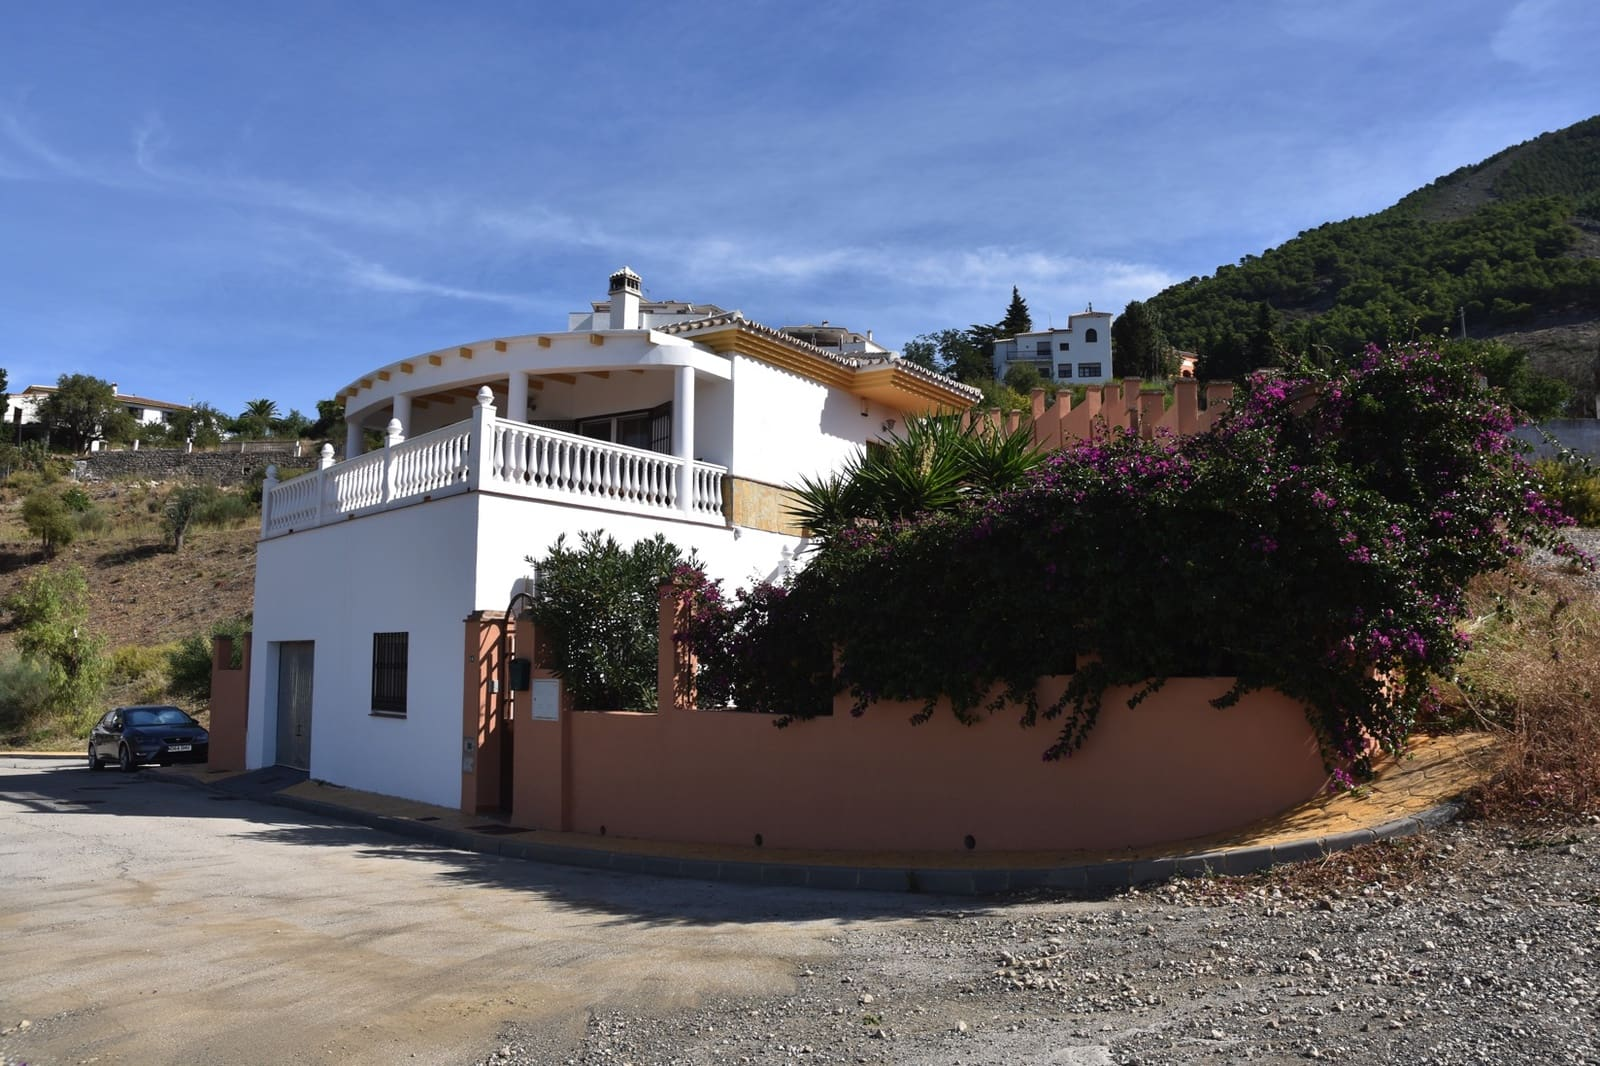 3 bedroom Villa for sale in Alcaucin with pool - € 249,000 (Ref: 4803211)